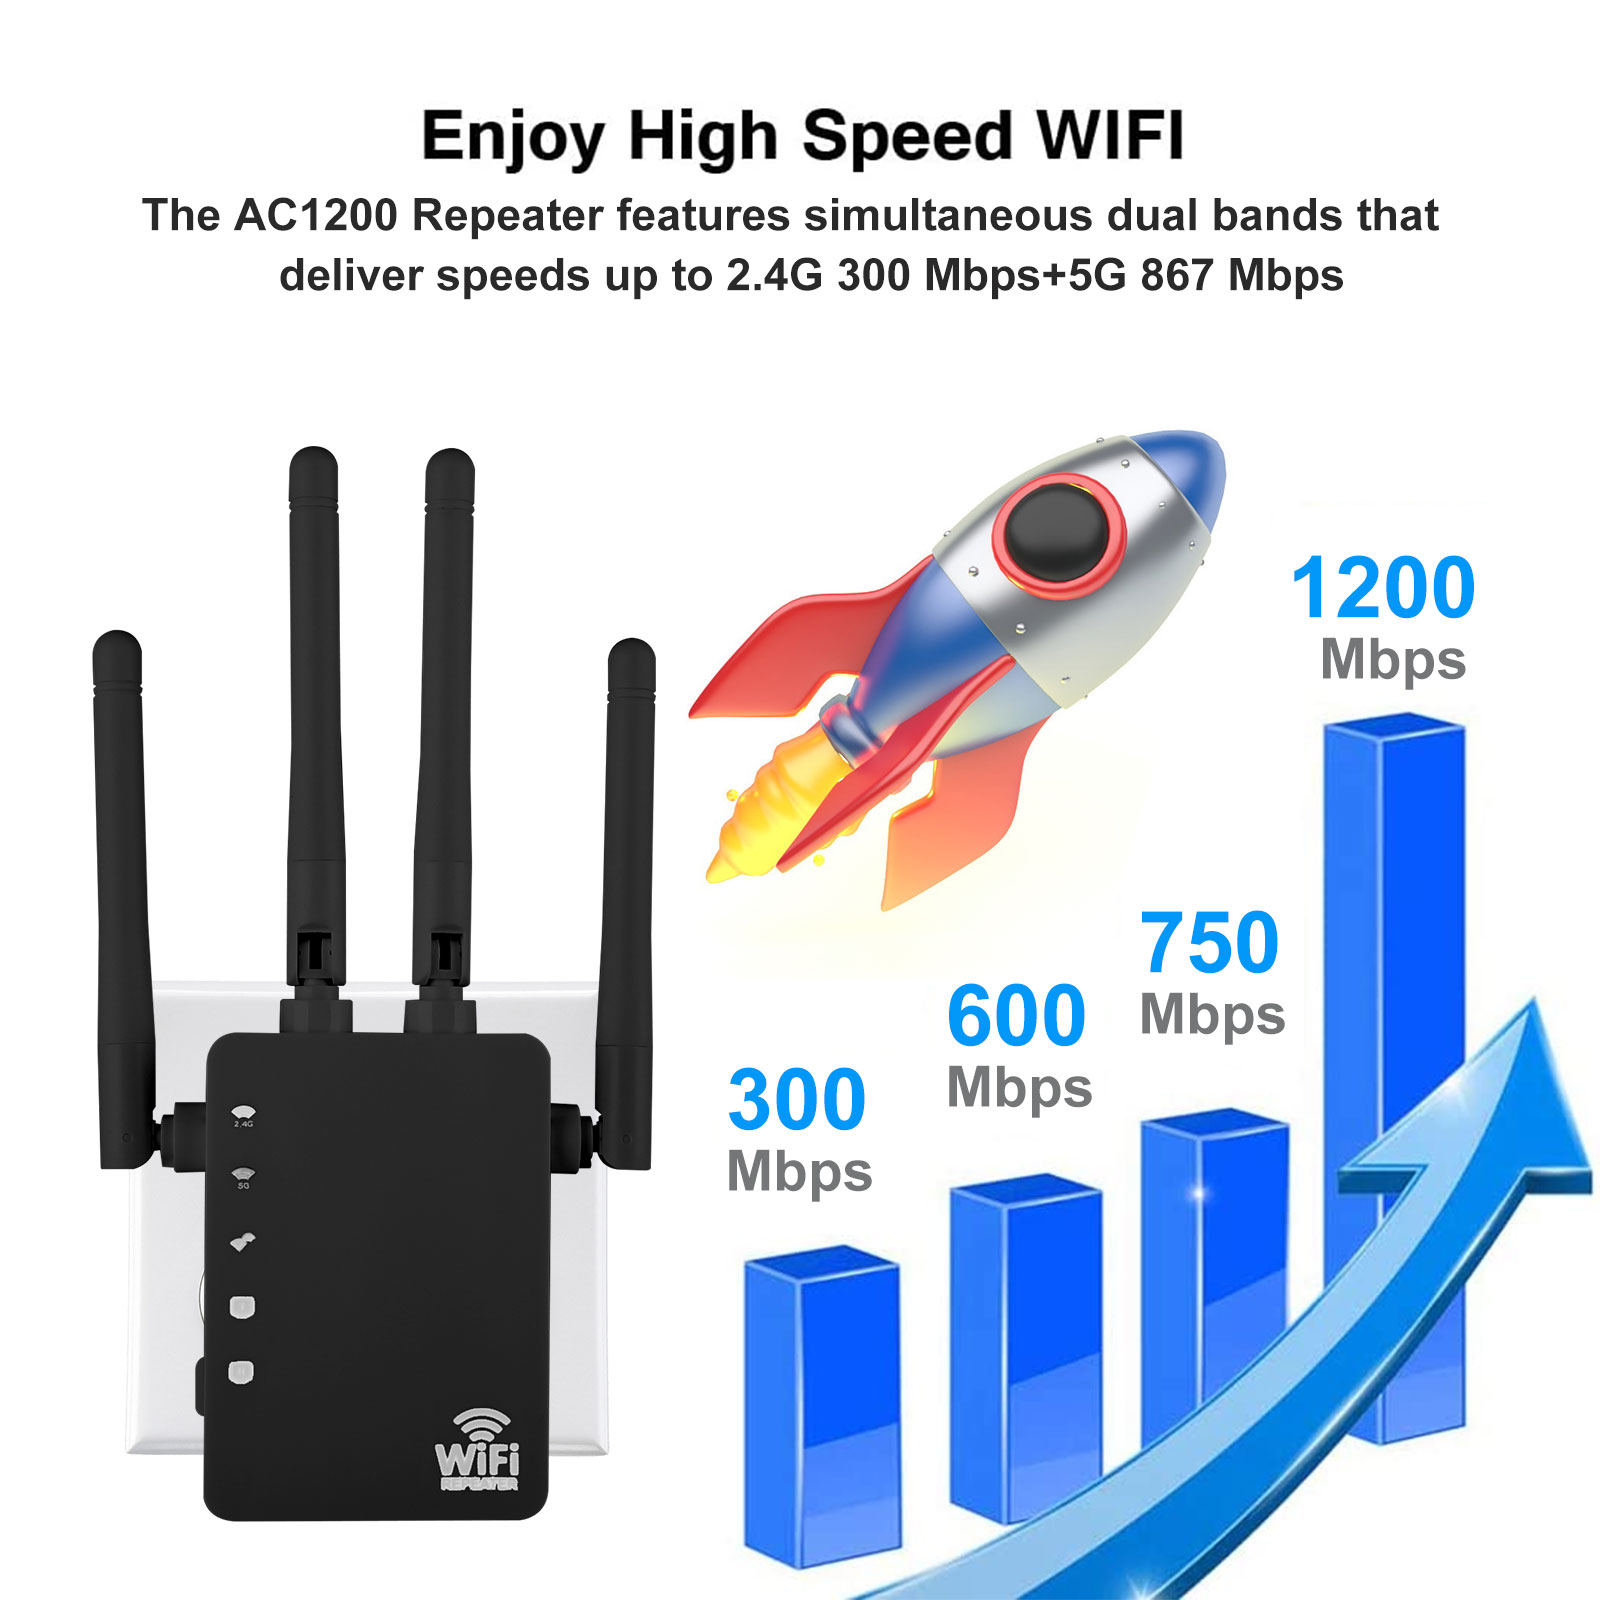 Black 1200Mbps WiFi Range Extender Extend WiFi Signal to Smart Home /& Alex Devices Carantee Wireless Signal Repeater Booster 2.4 /& 5GHz Dual Band 4 Antennas 360/° Full Coverage